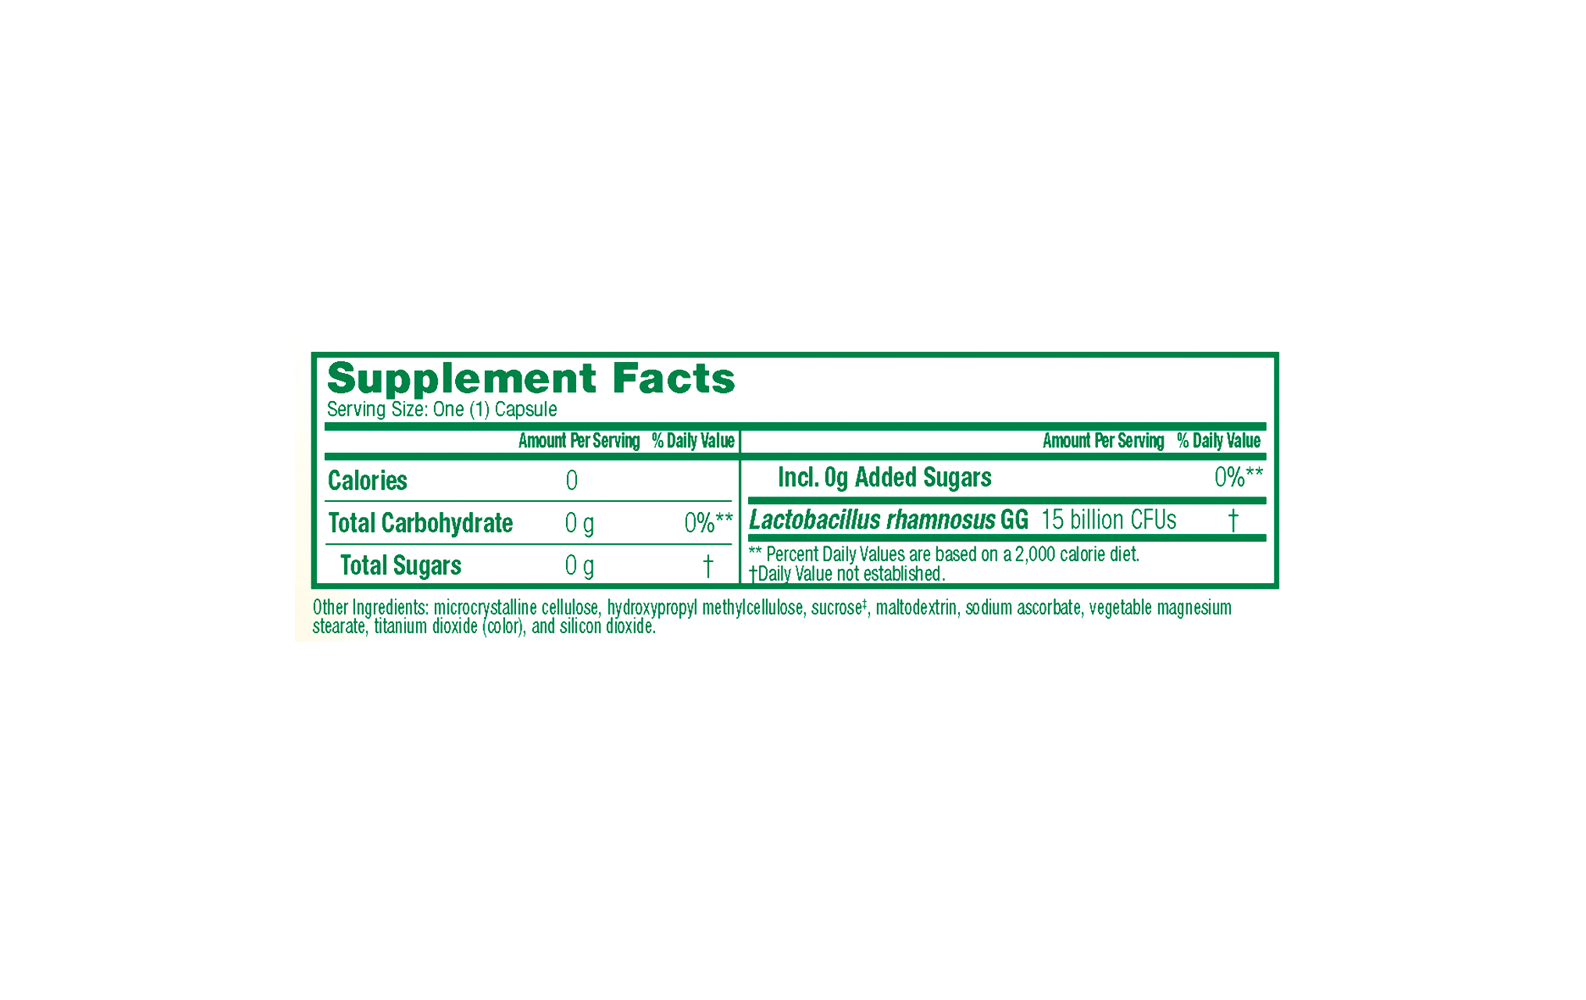 Culturelle® Vegetarian Health and Wellness (Health Food) supplemental facts